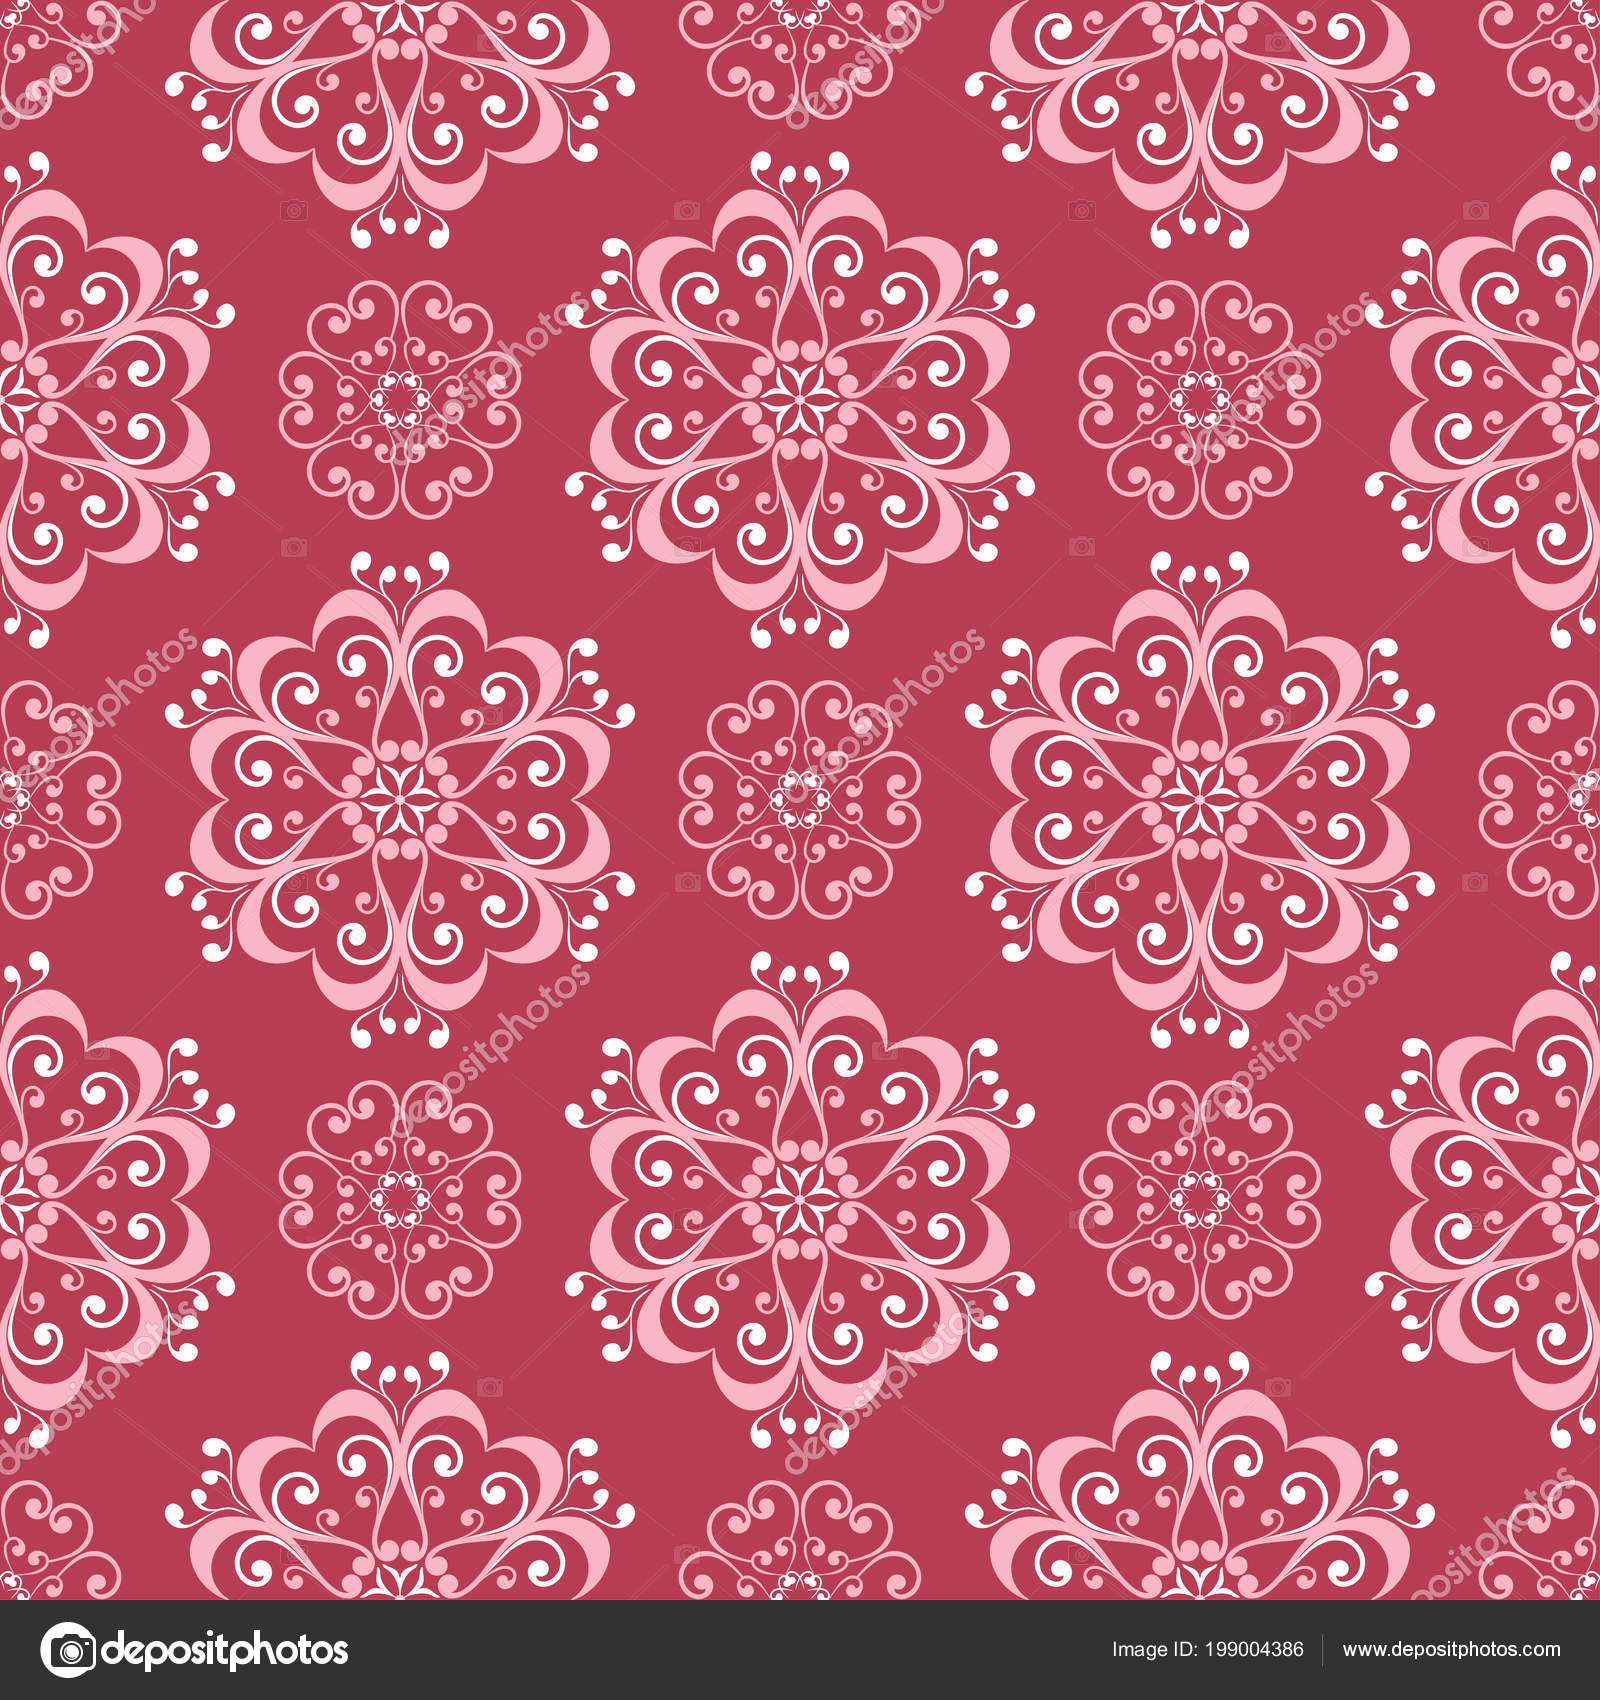 Red And Beige Floral Background Colored Seamless Pattern For Wallpapers,